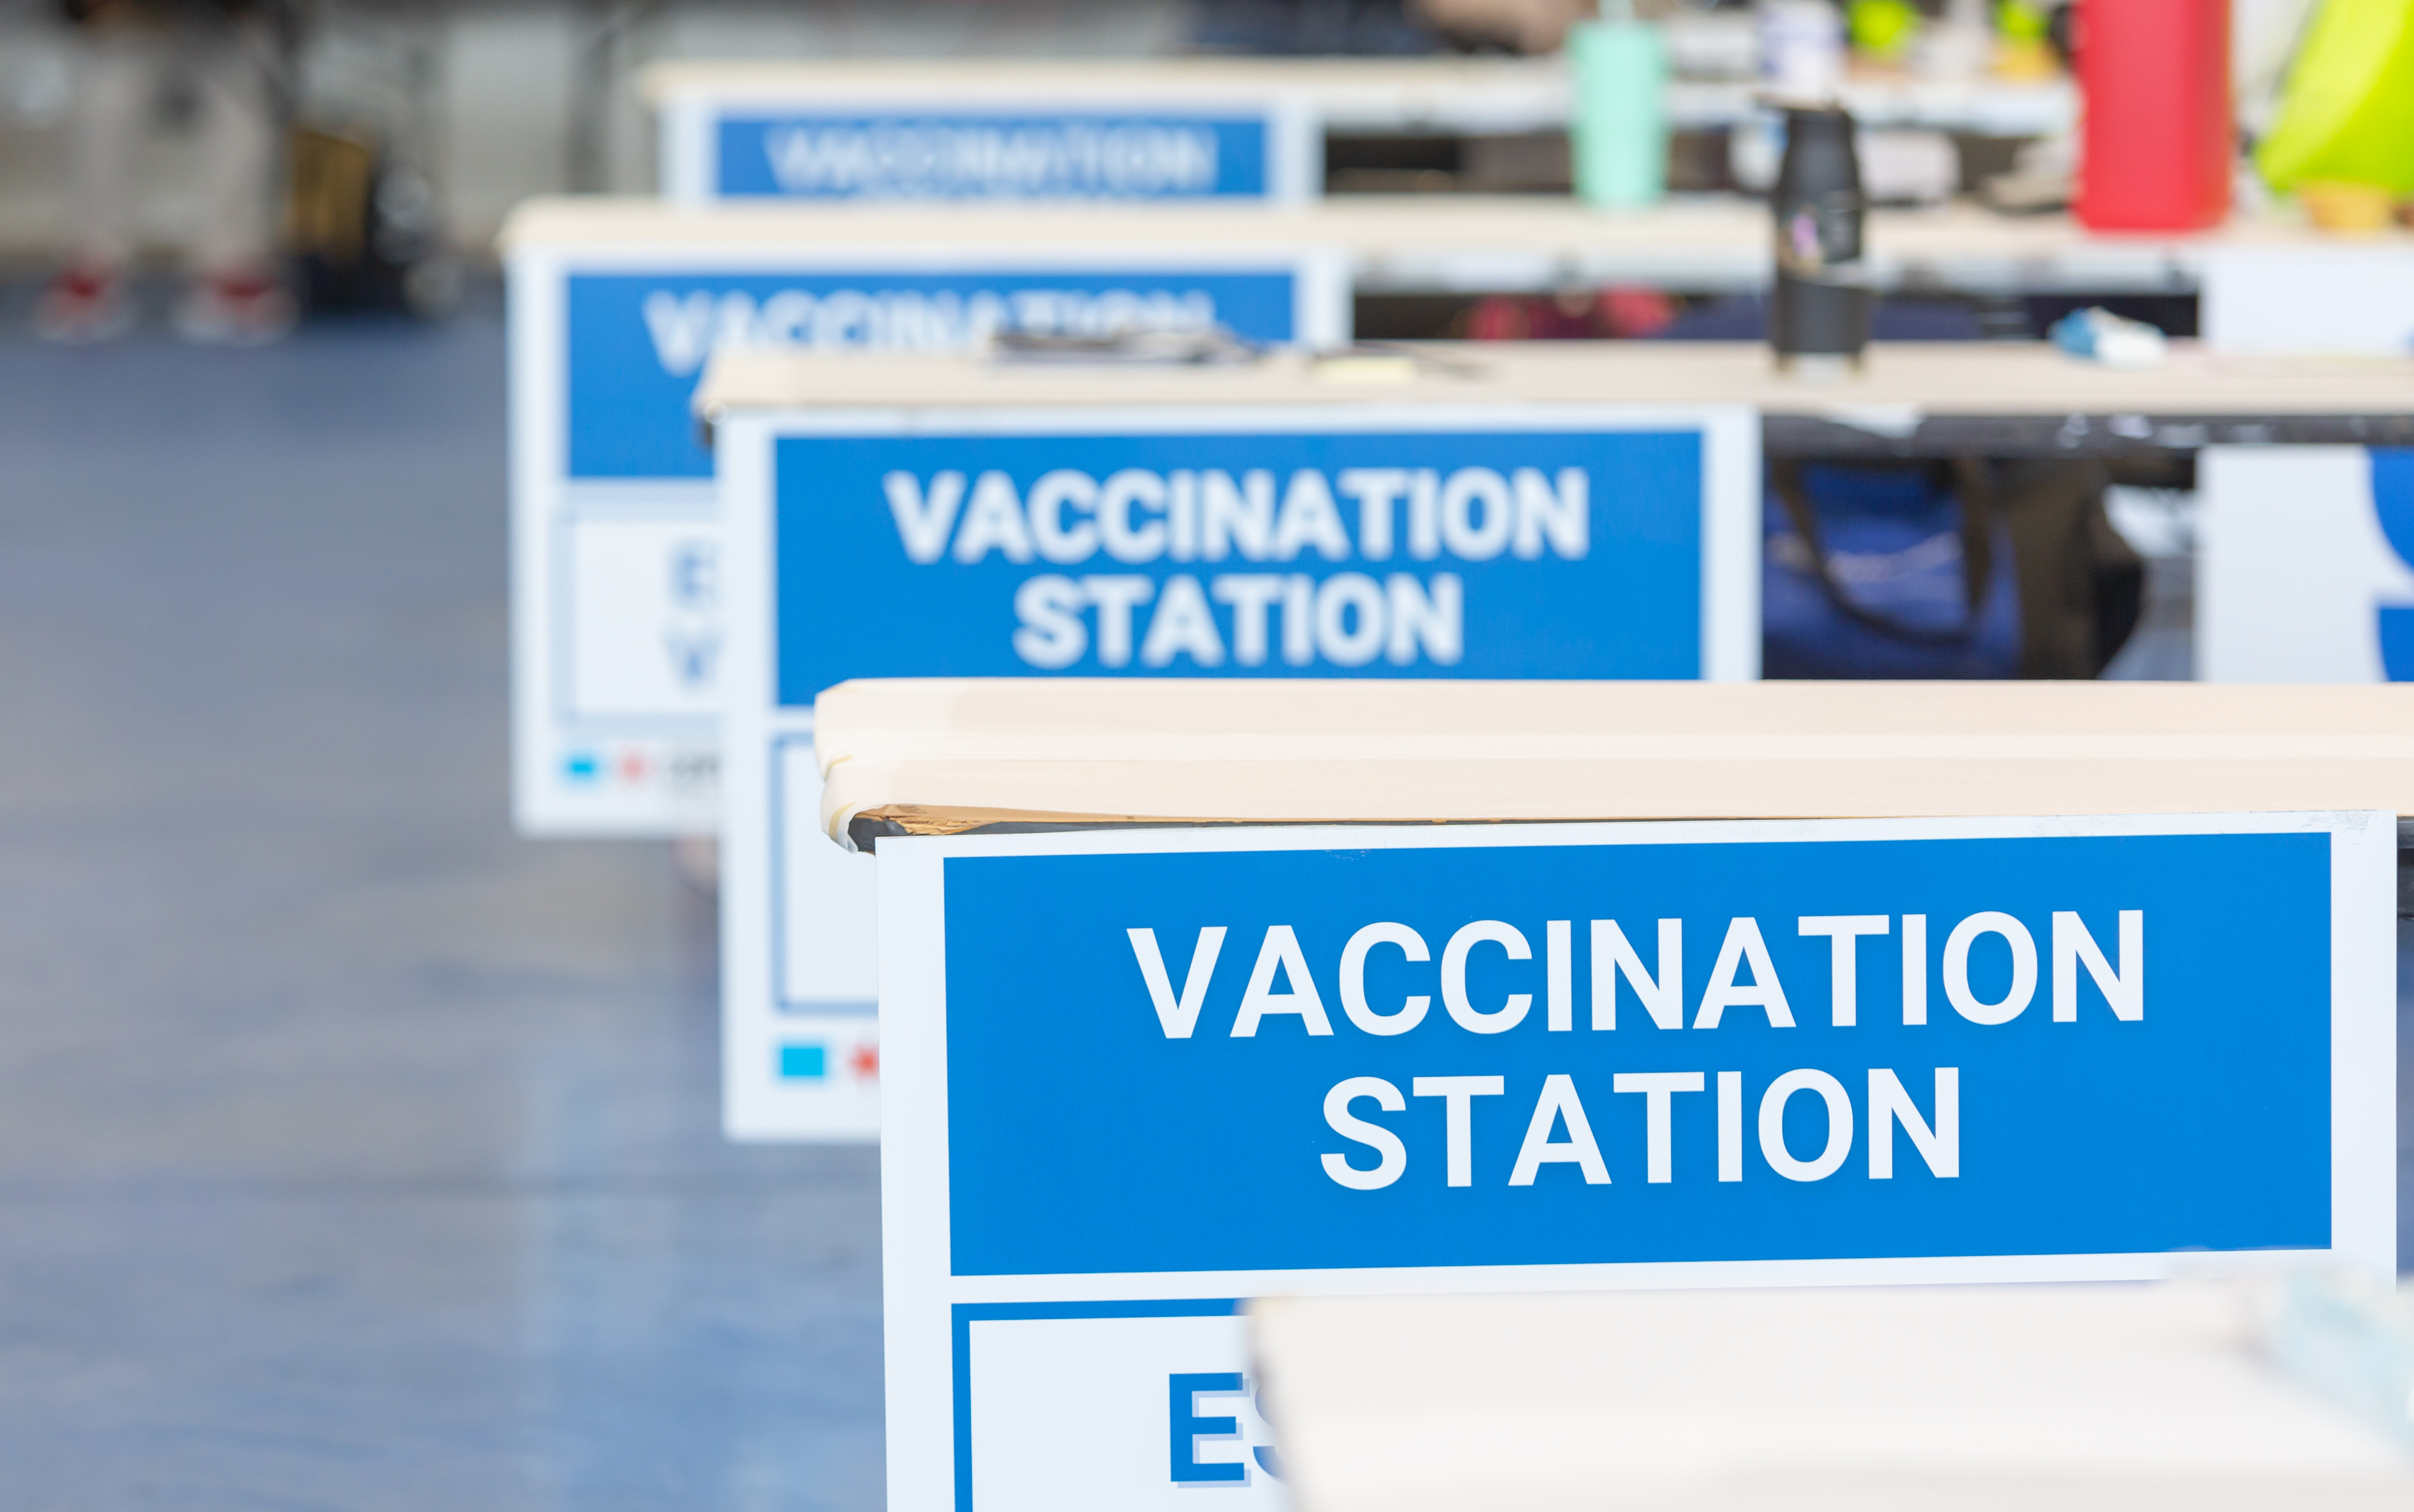 Vaccination Station Signs